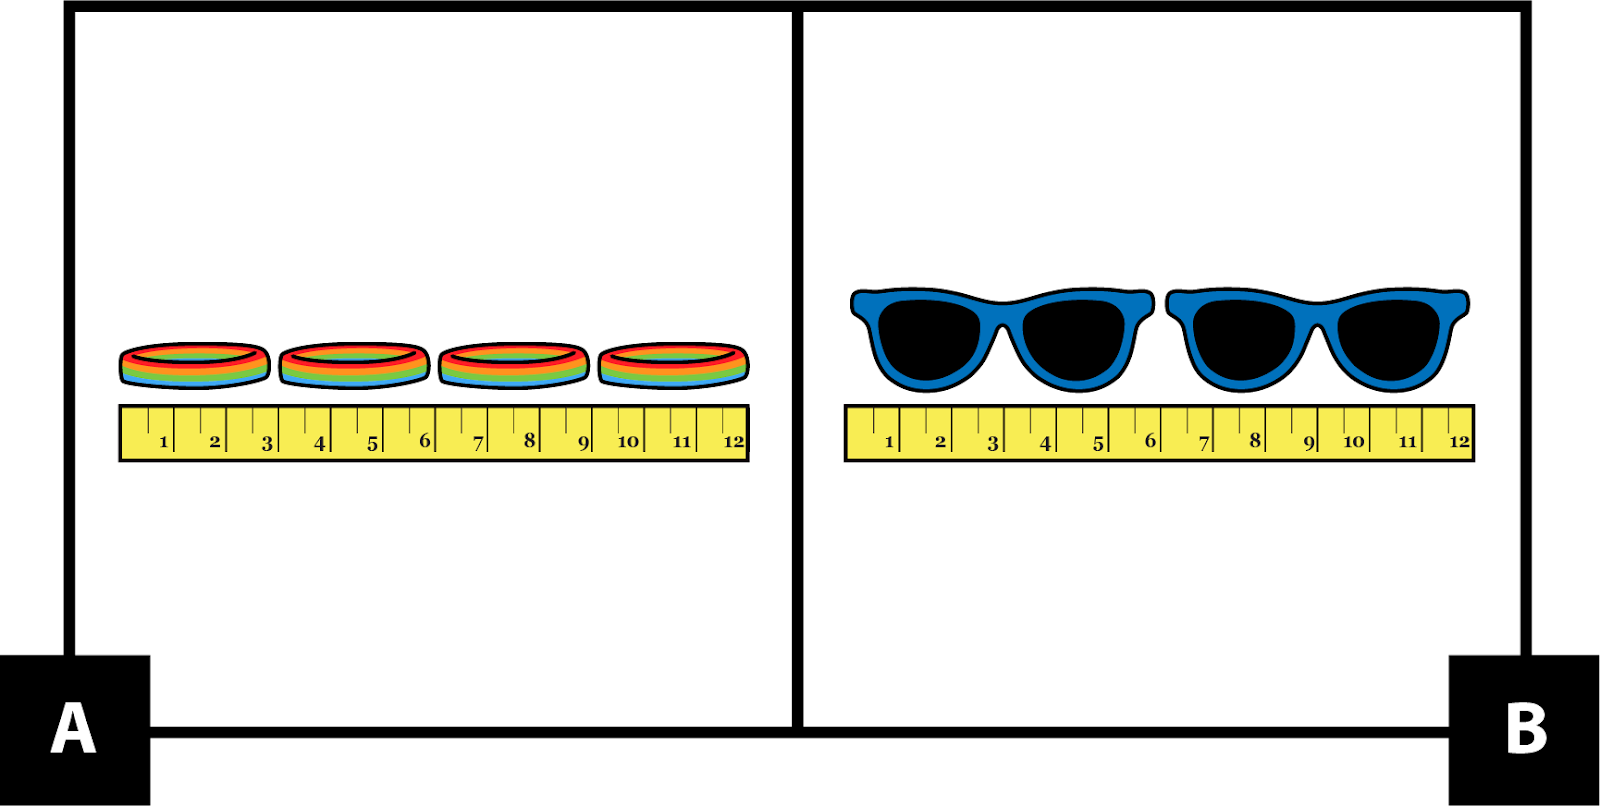 A. shows 4 colorful bracelets and a ruler. Each bracelet measures 3 inches. B. shows 2 pairs of blue sunglasses and a ruler. Each pair of sunglasses measures 6 inches.